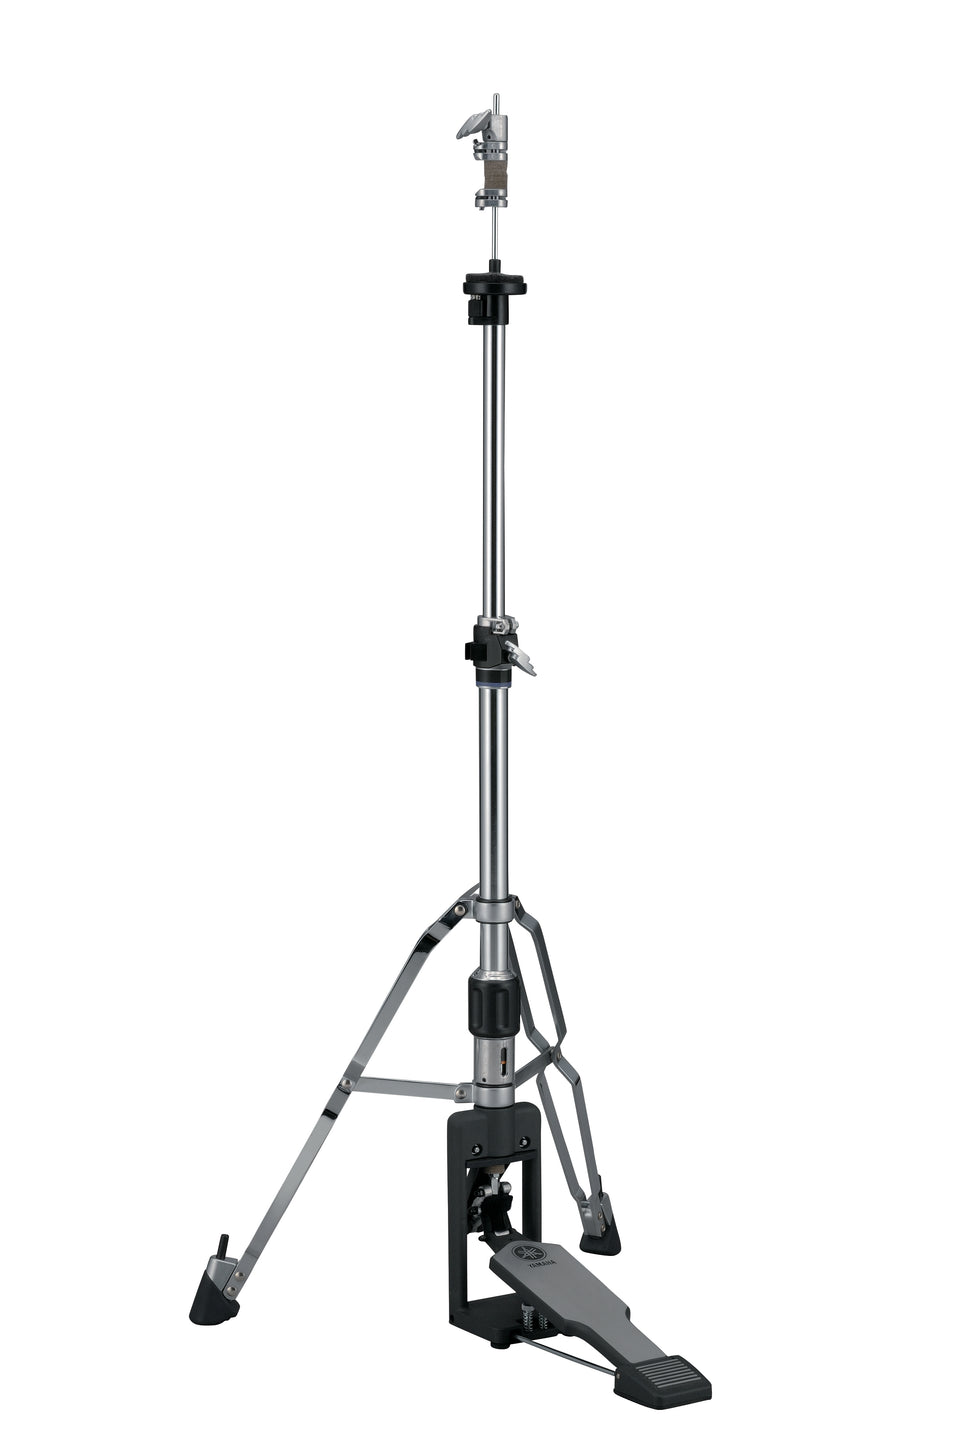 Yamaha HS-1200T Toggle-Drive Two-Legged Hi-Hat Stand